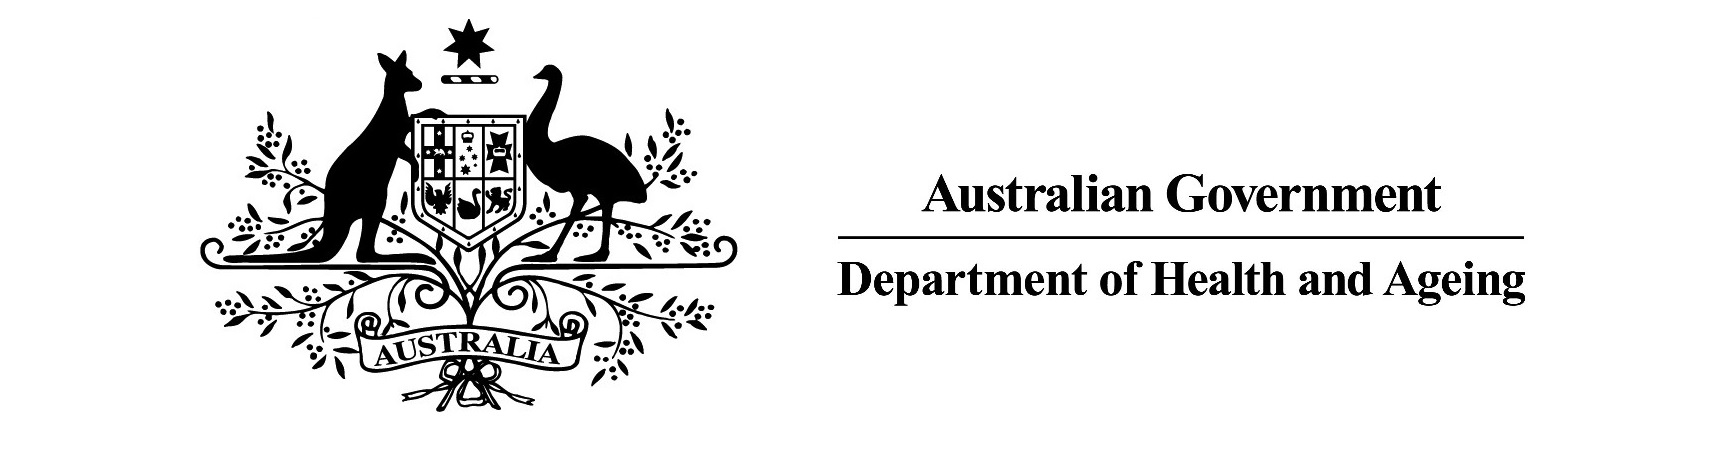 Australian Department of Health & Ageing